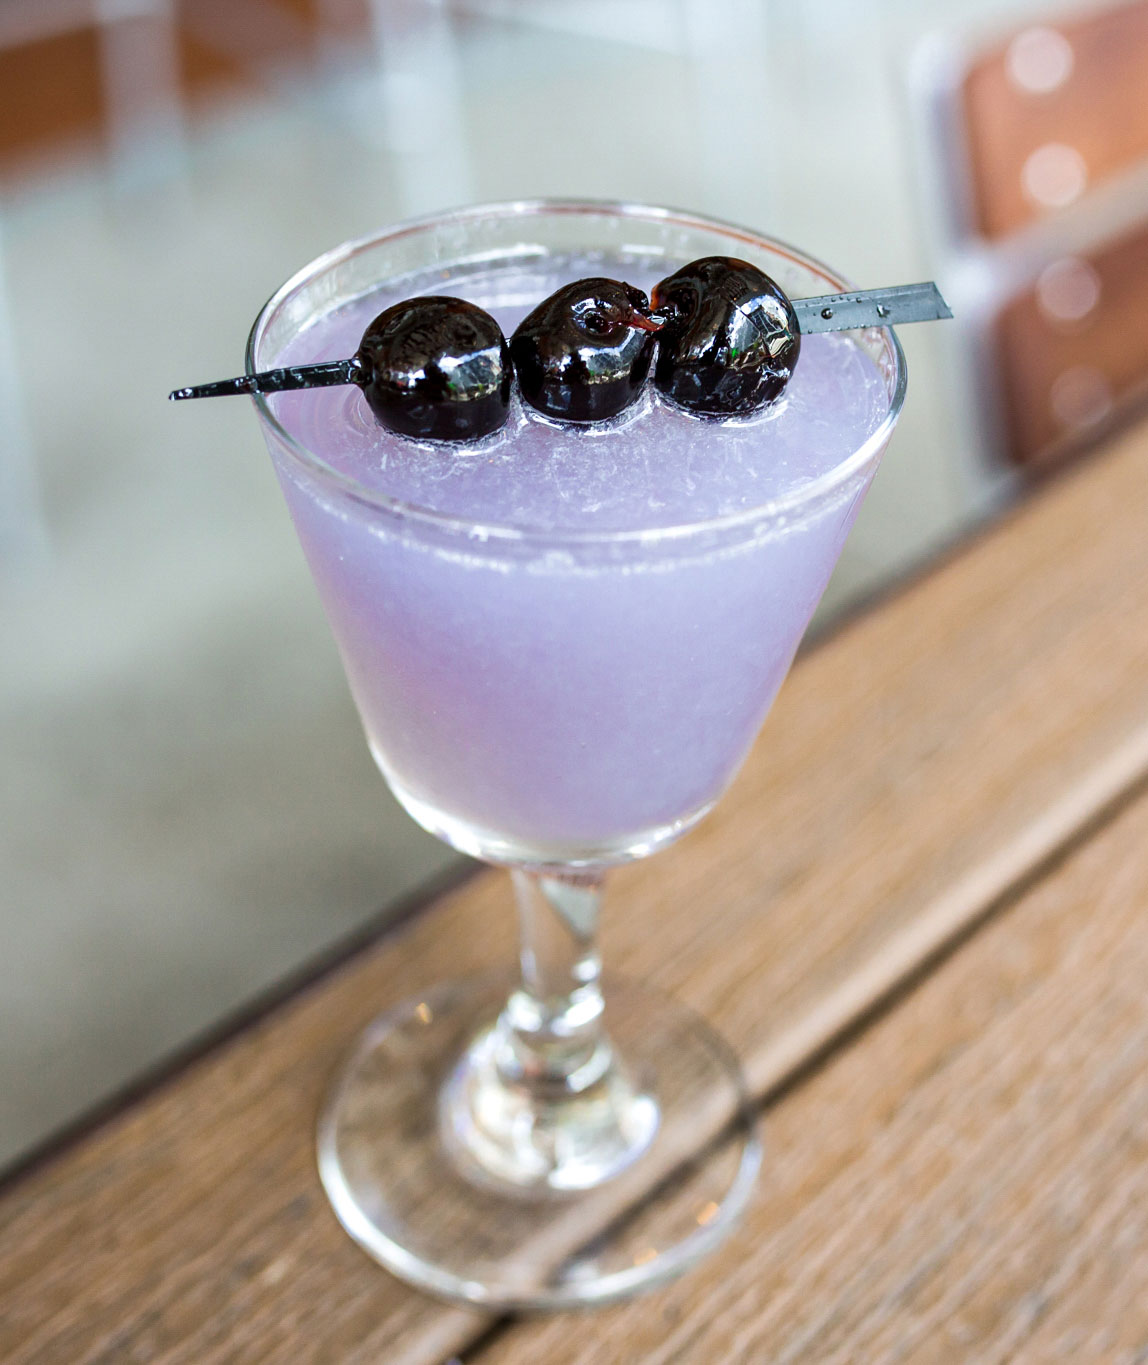 An example of the Aviation, the mixed drink (cocktail) featuring Hayman's London Dry Gin, lemon juice, maraschino liqueur, and Rothman & Winter Crème de Violette; photo by Carolina Stamey, STIR, Chattanooga